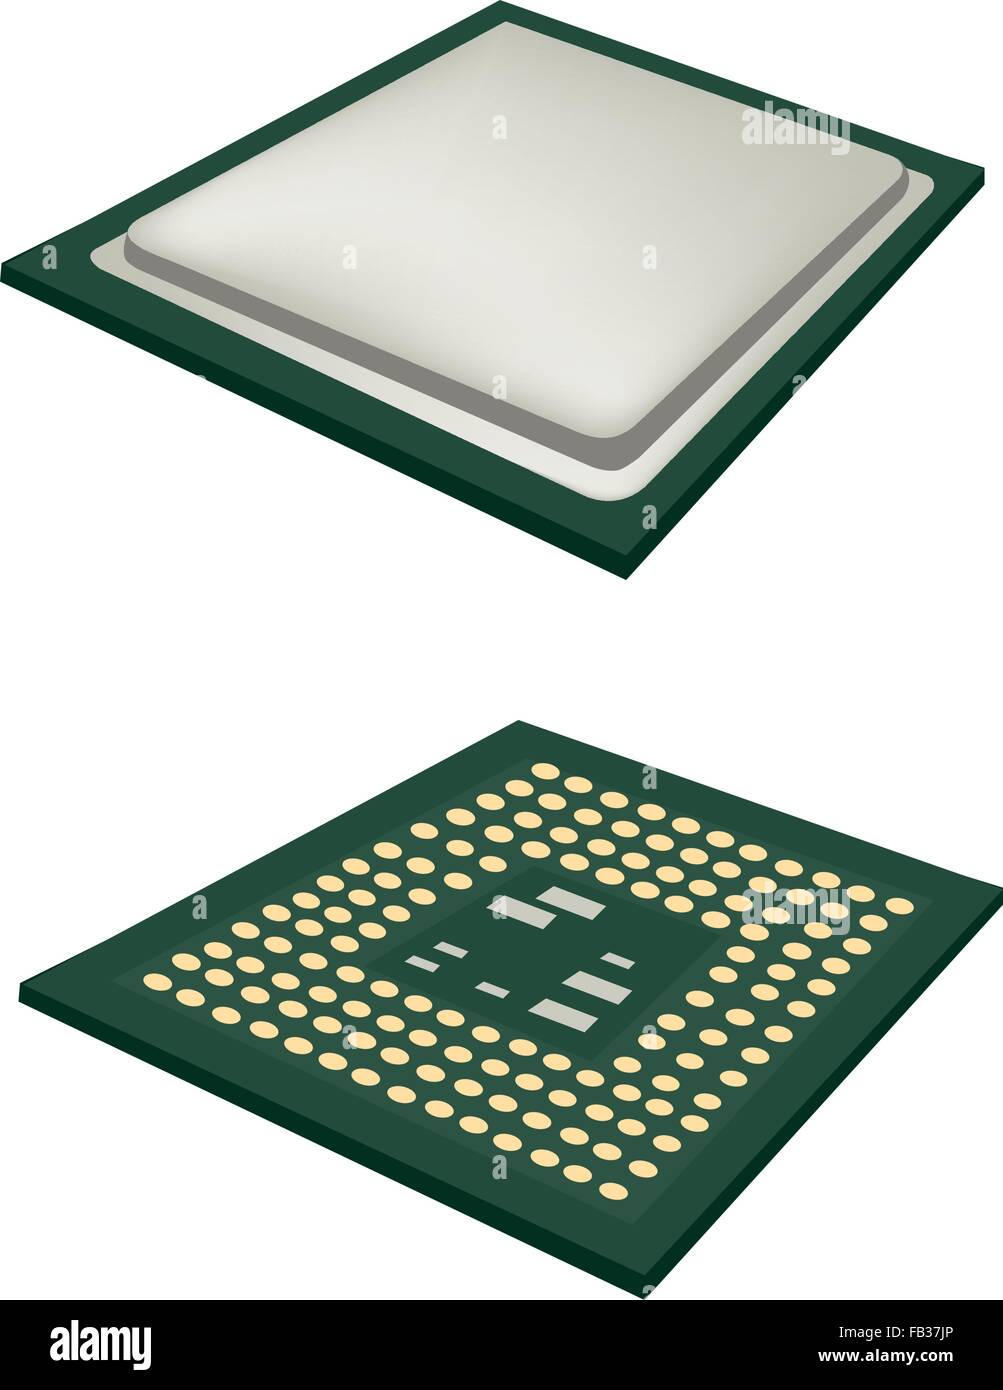 Computer and  Technology, Illustration of Computer CPU Chip or CPU Processor Isolated on White Background. Stock Vector